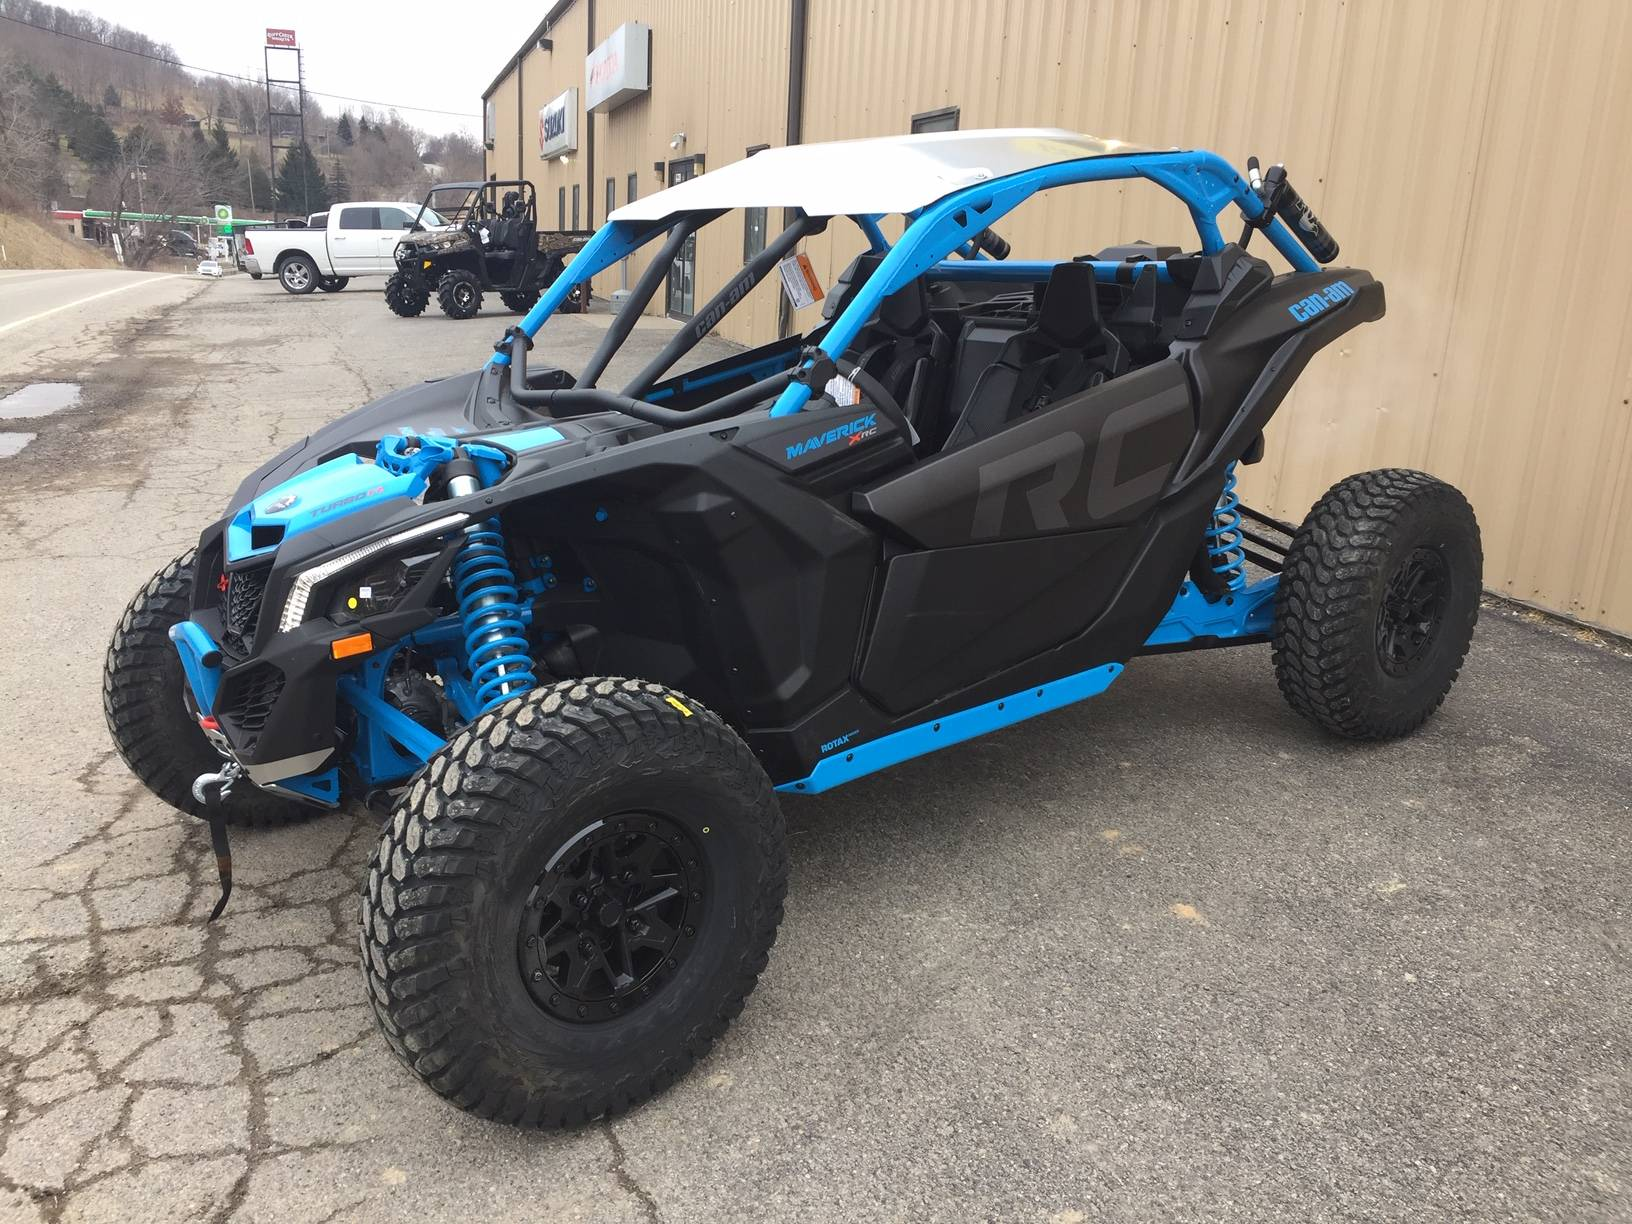 2019 Can-Am Maverick X3 X rc Turbo R in Claysville, Pennsylvania - Photo 2